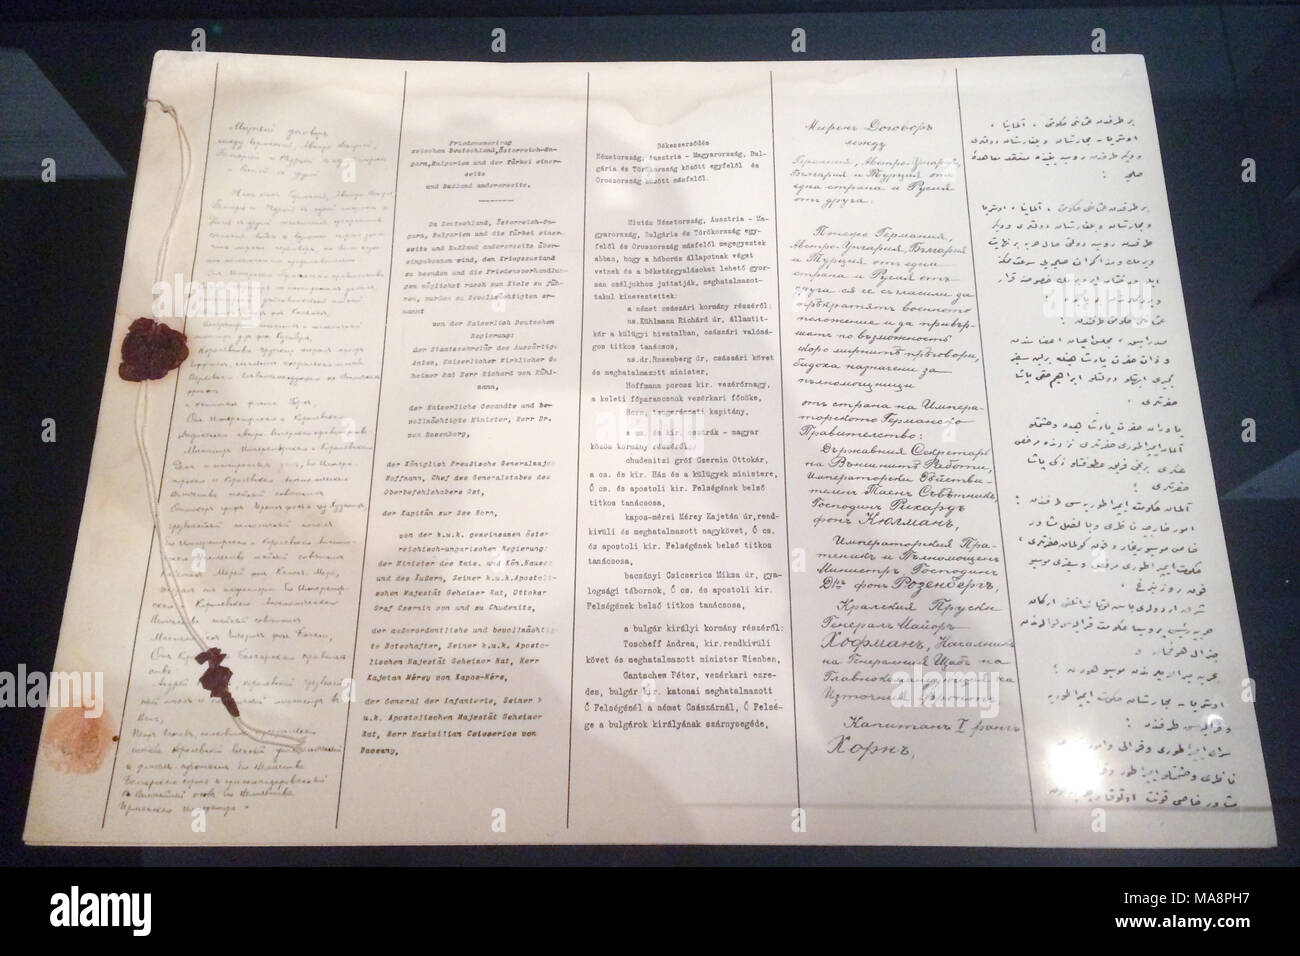 The first page of the Treaty of Brest-Litovsk on display at the exhibition in the German Historical Museum (Deutsches Historisches Museum) in Berlin, Germany. The peace treaty signed on 3 March 1918 in Brest-Litovsk (now Brest in Belarus) between the Bolshevik government of Soviet Russia and the Central Powers (Germany, Austria-Hungary, Bulgaria, and the Ottoman Empire) ended Russia's participation in World War I. The exhibition devoted to the centenary of the Russian Revolution runs till 15 April 2018. - Stock Image